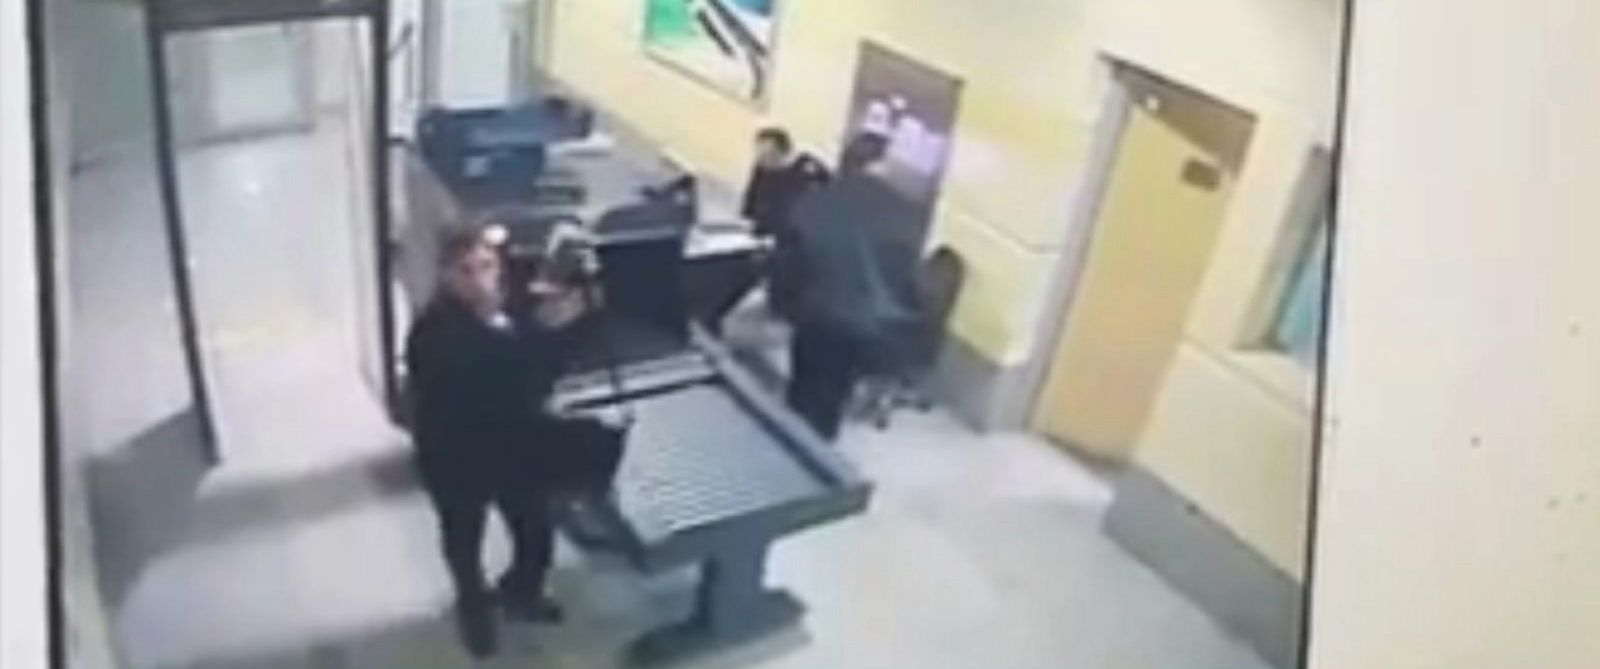 PHOTO: Video from Egyptian Interior Ministry shows the alleged EgyptAir hijacker going through airport security in Alexandria, Egypt.